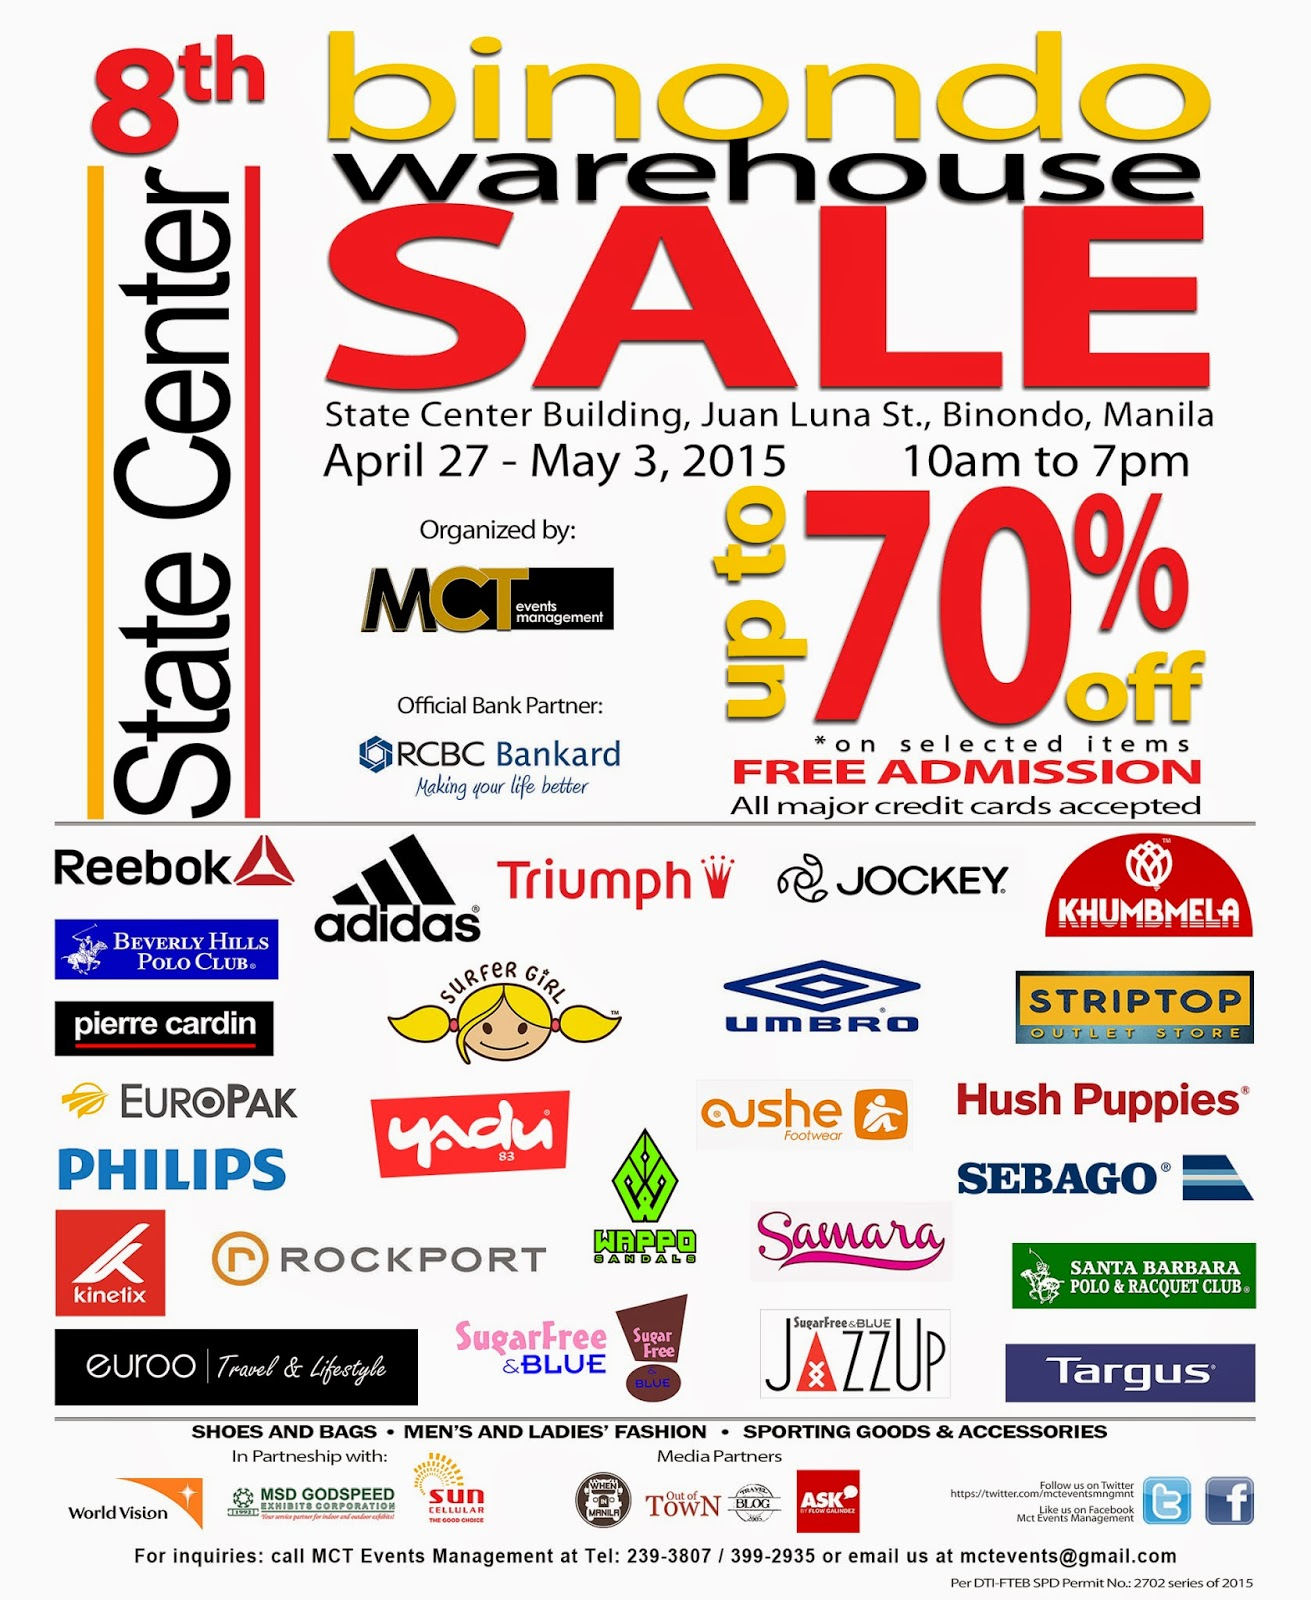 http://wahmwrites.blogspot.com/2015/04/8th-binondo-warehouse-sale.html